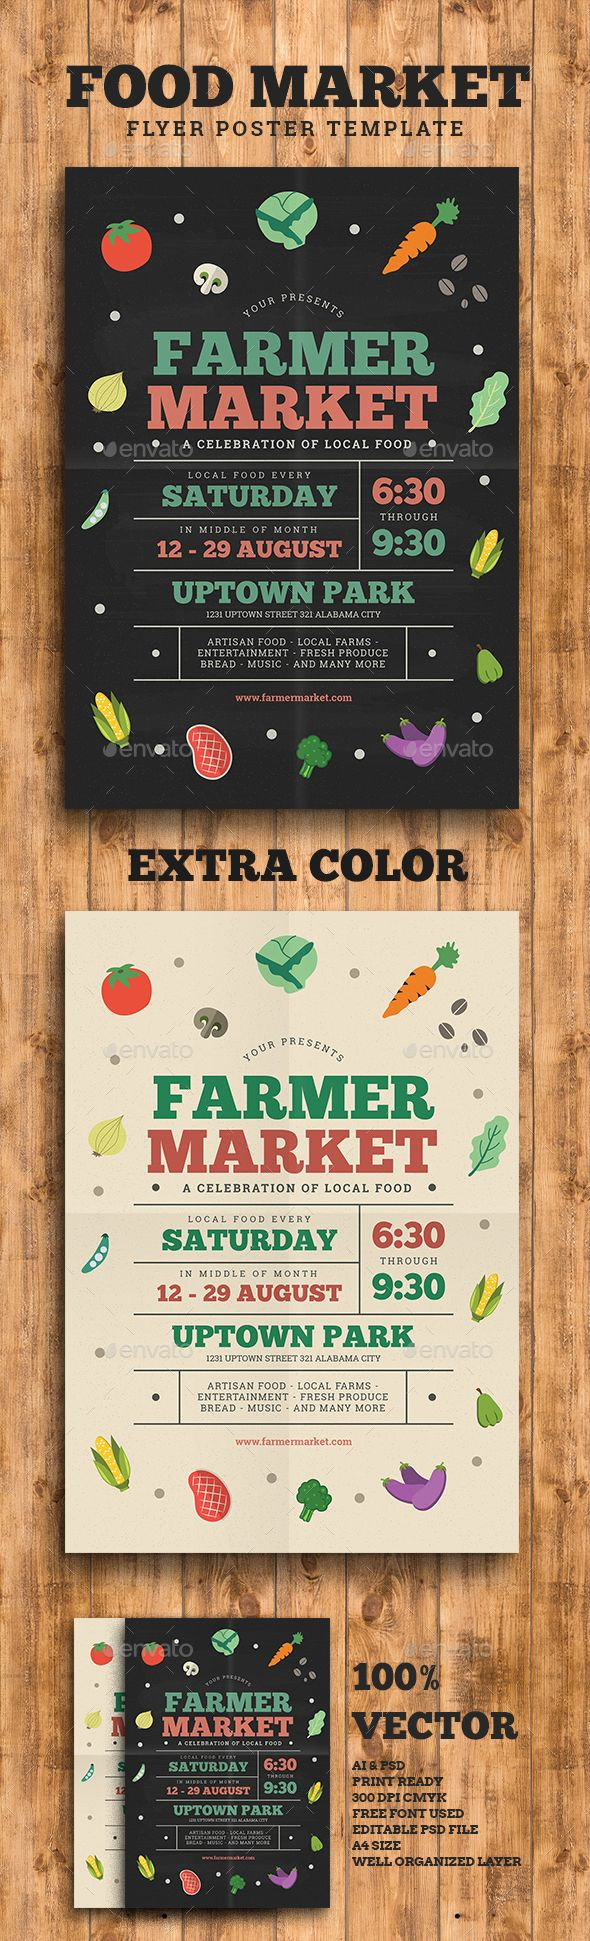 best ideas about marketing flyers flyers flyer farmer food market flyer marketing flyer designfood